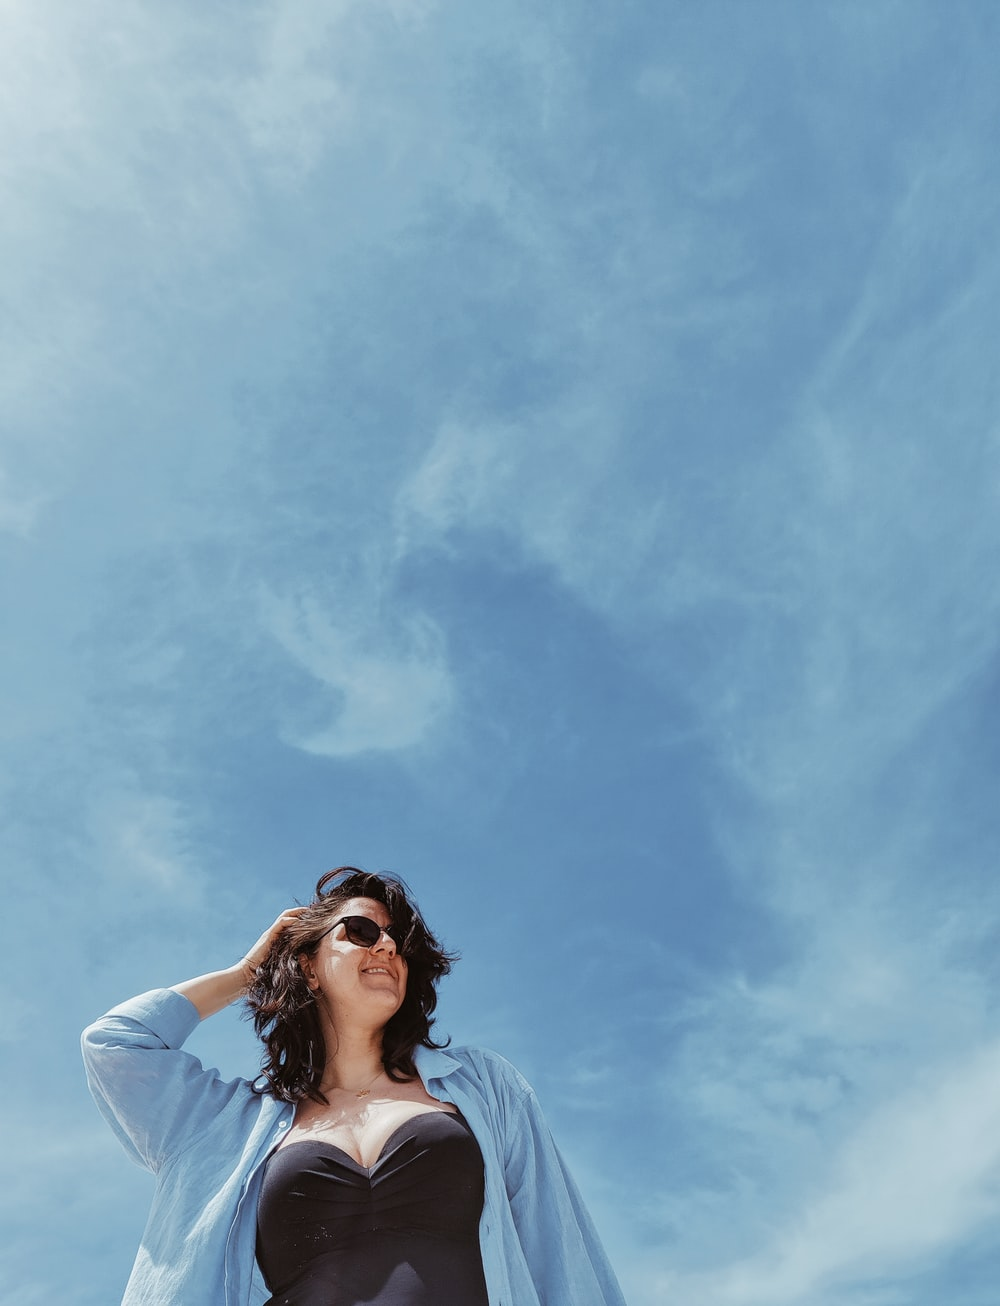 woman in white shirt under blue sky during daytime